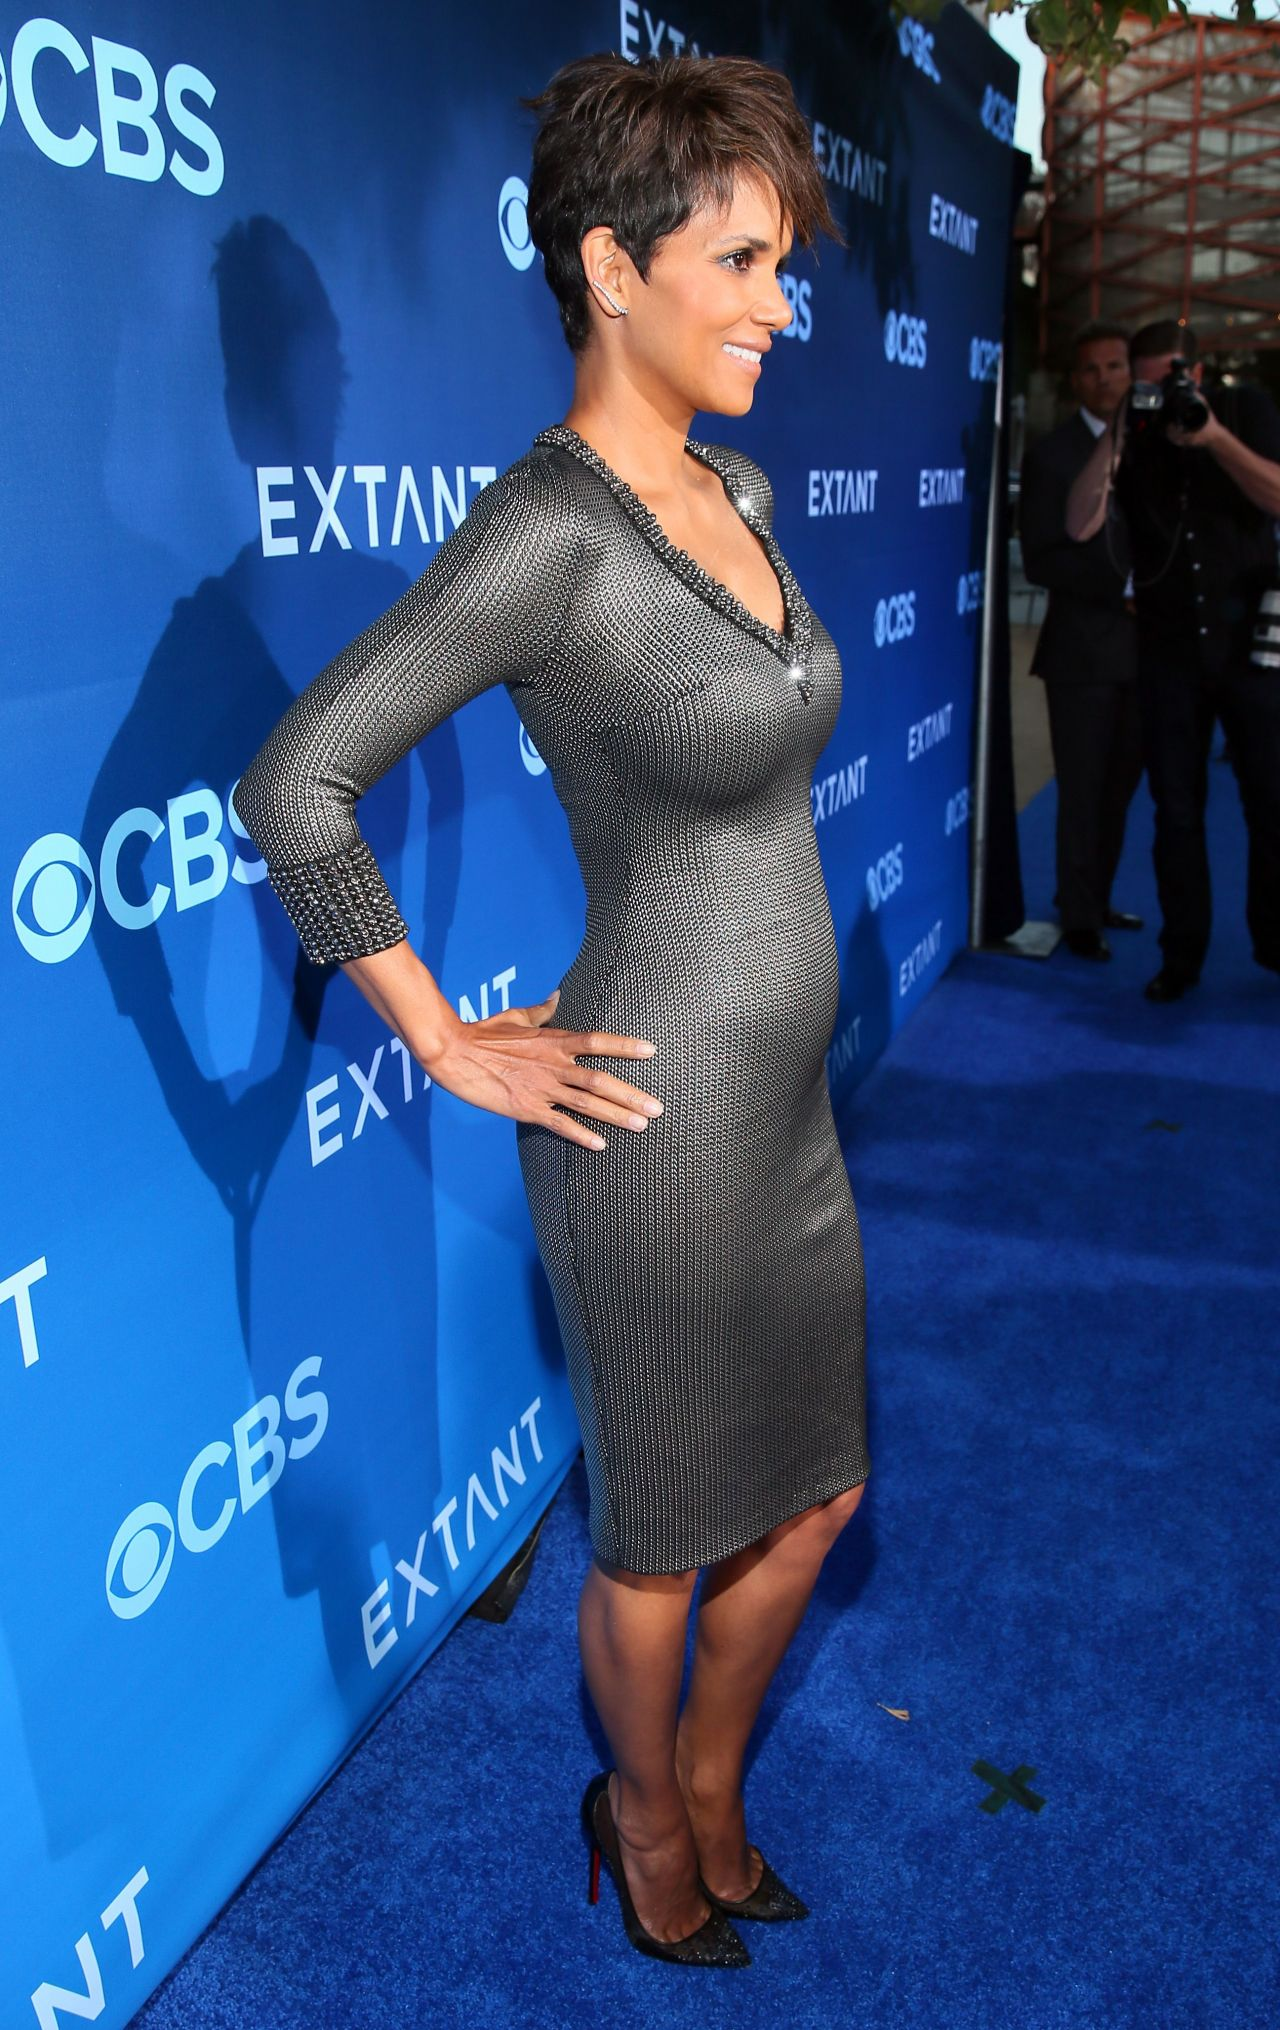 Halle Berry Extant Premiere In Los Angeles